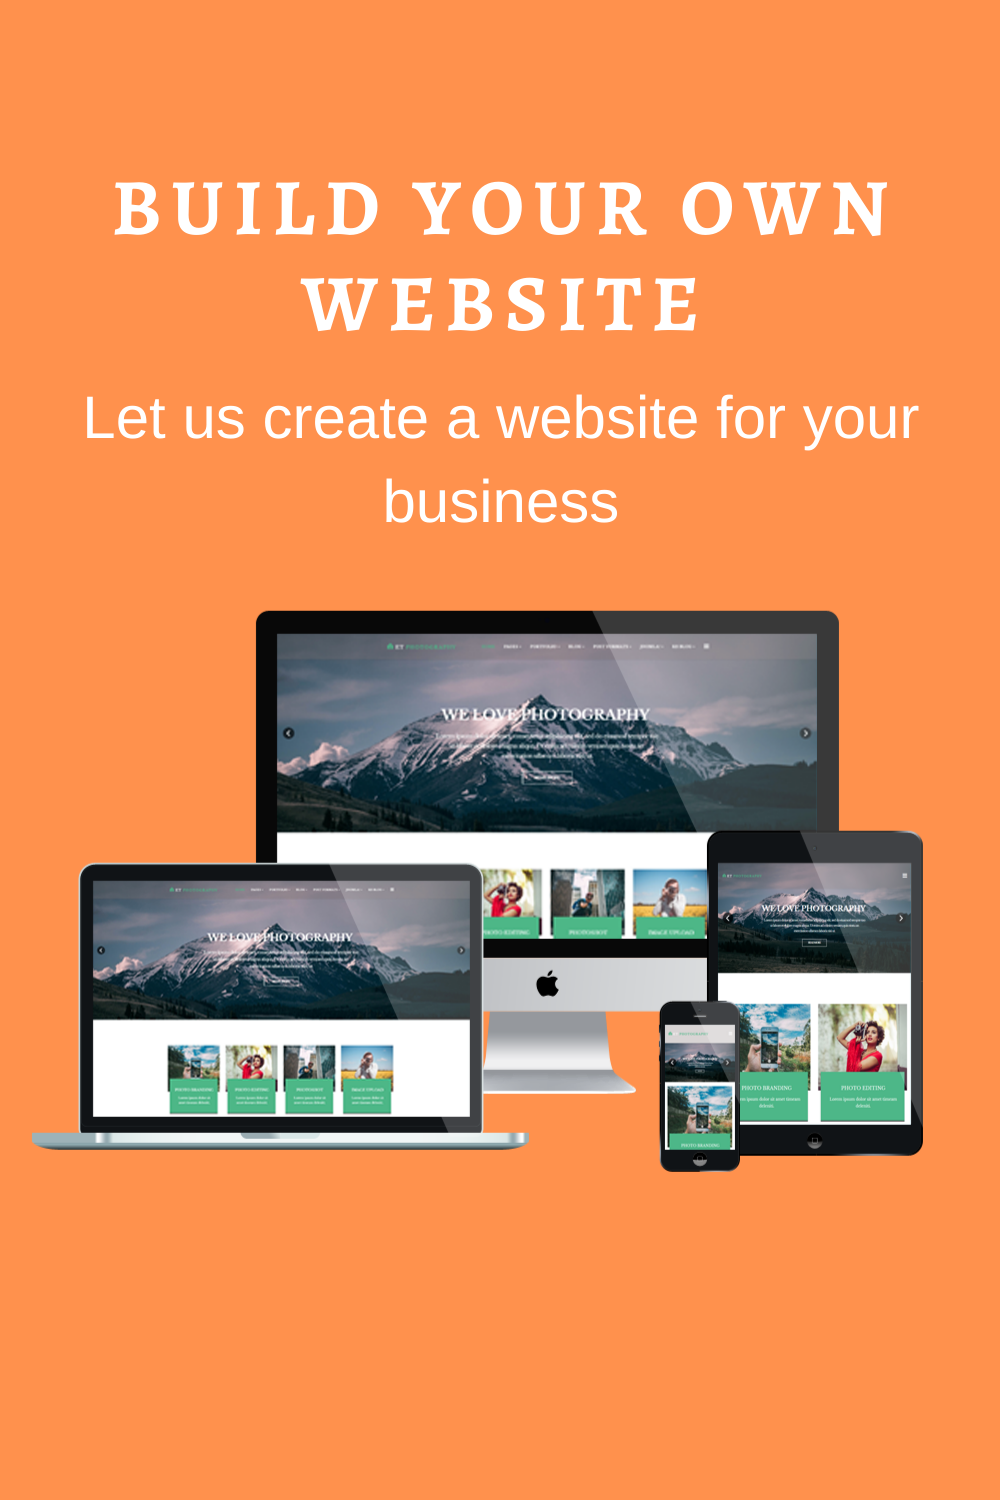 How To Create A Website How To Build A Website For Free How To Build A Website With Wordpress Building A Website Freelancer Website Build Website Free